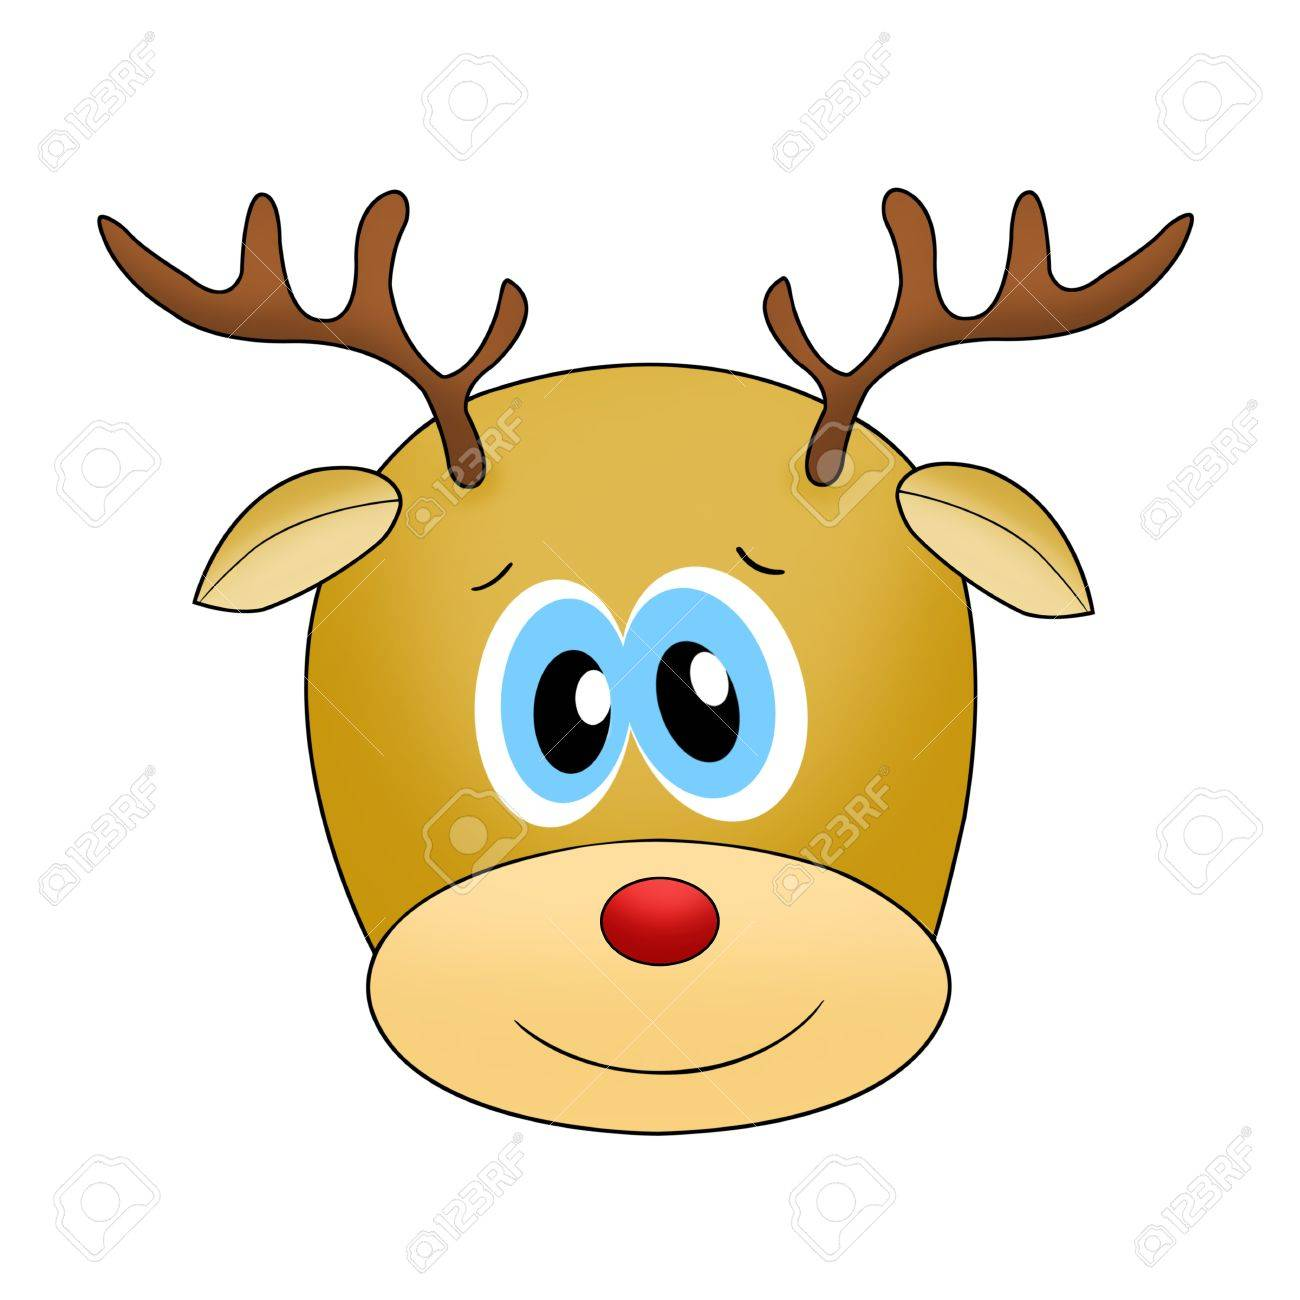 Uncategorized Raindeer Face reindeer face isolated on white stock photo picture and royalty 11708929